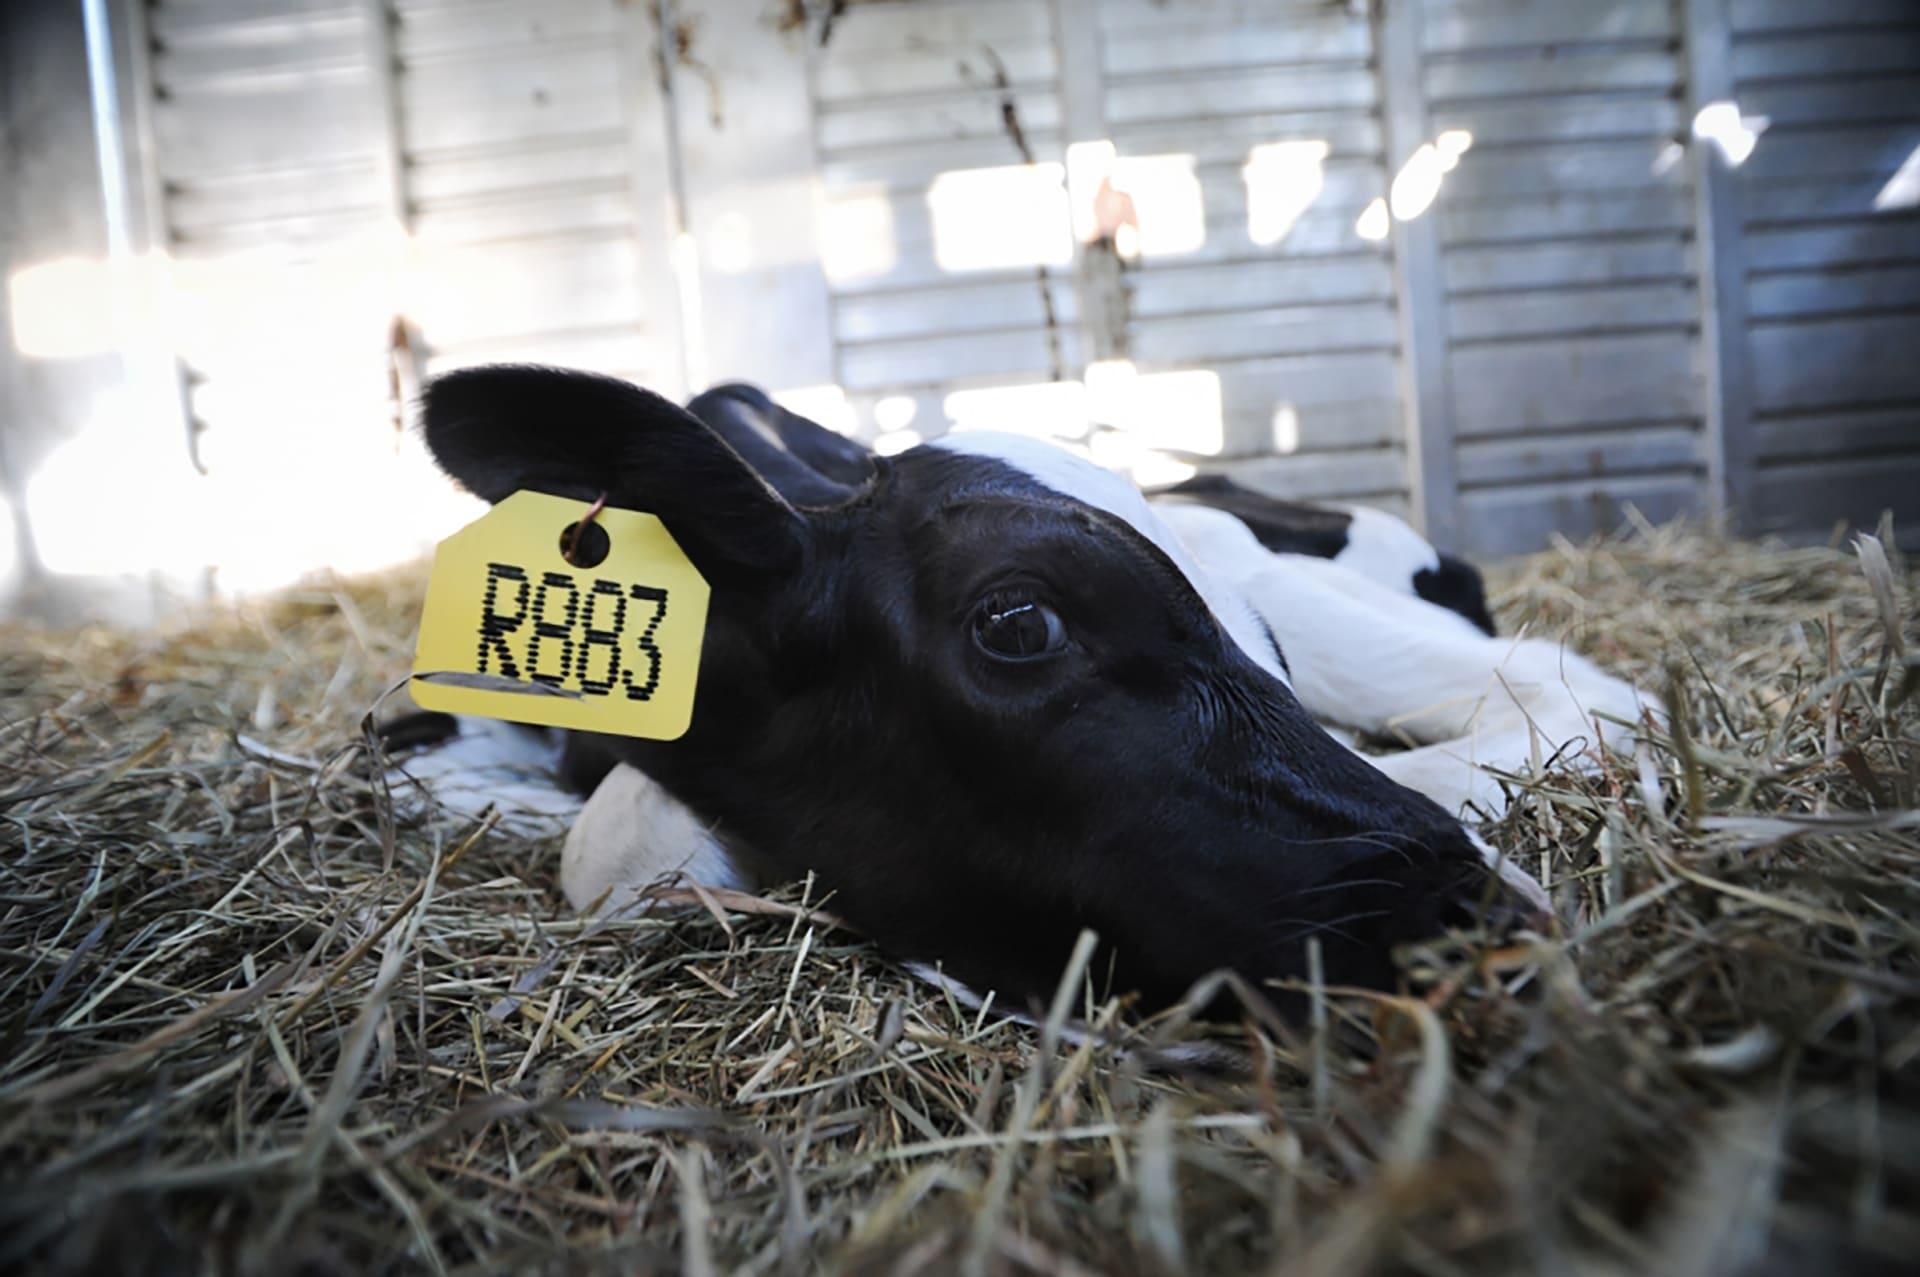 Rescued Dairy Calf (Photo by JoAnne McArthur) - Veganism & the Environment Guide - Your Daily Vegan